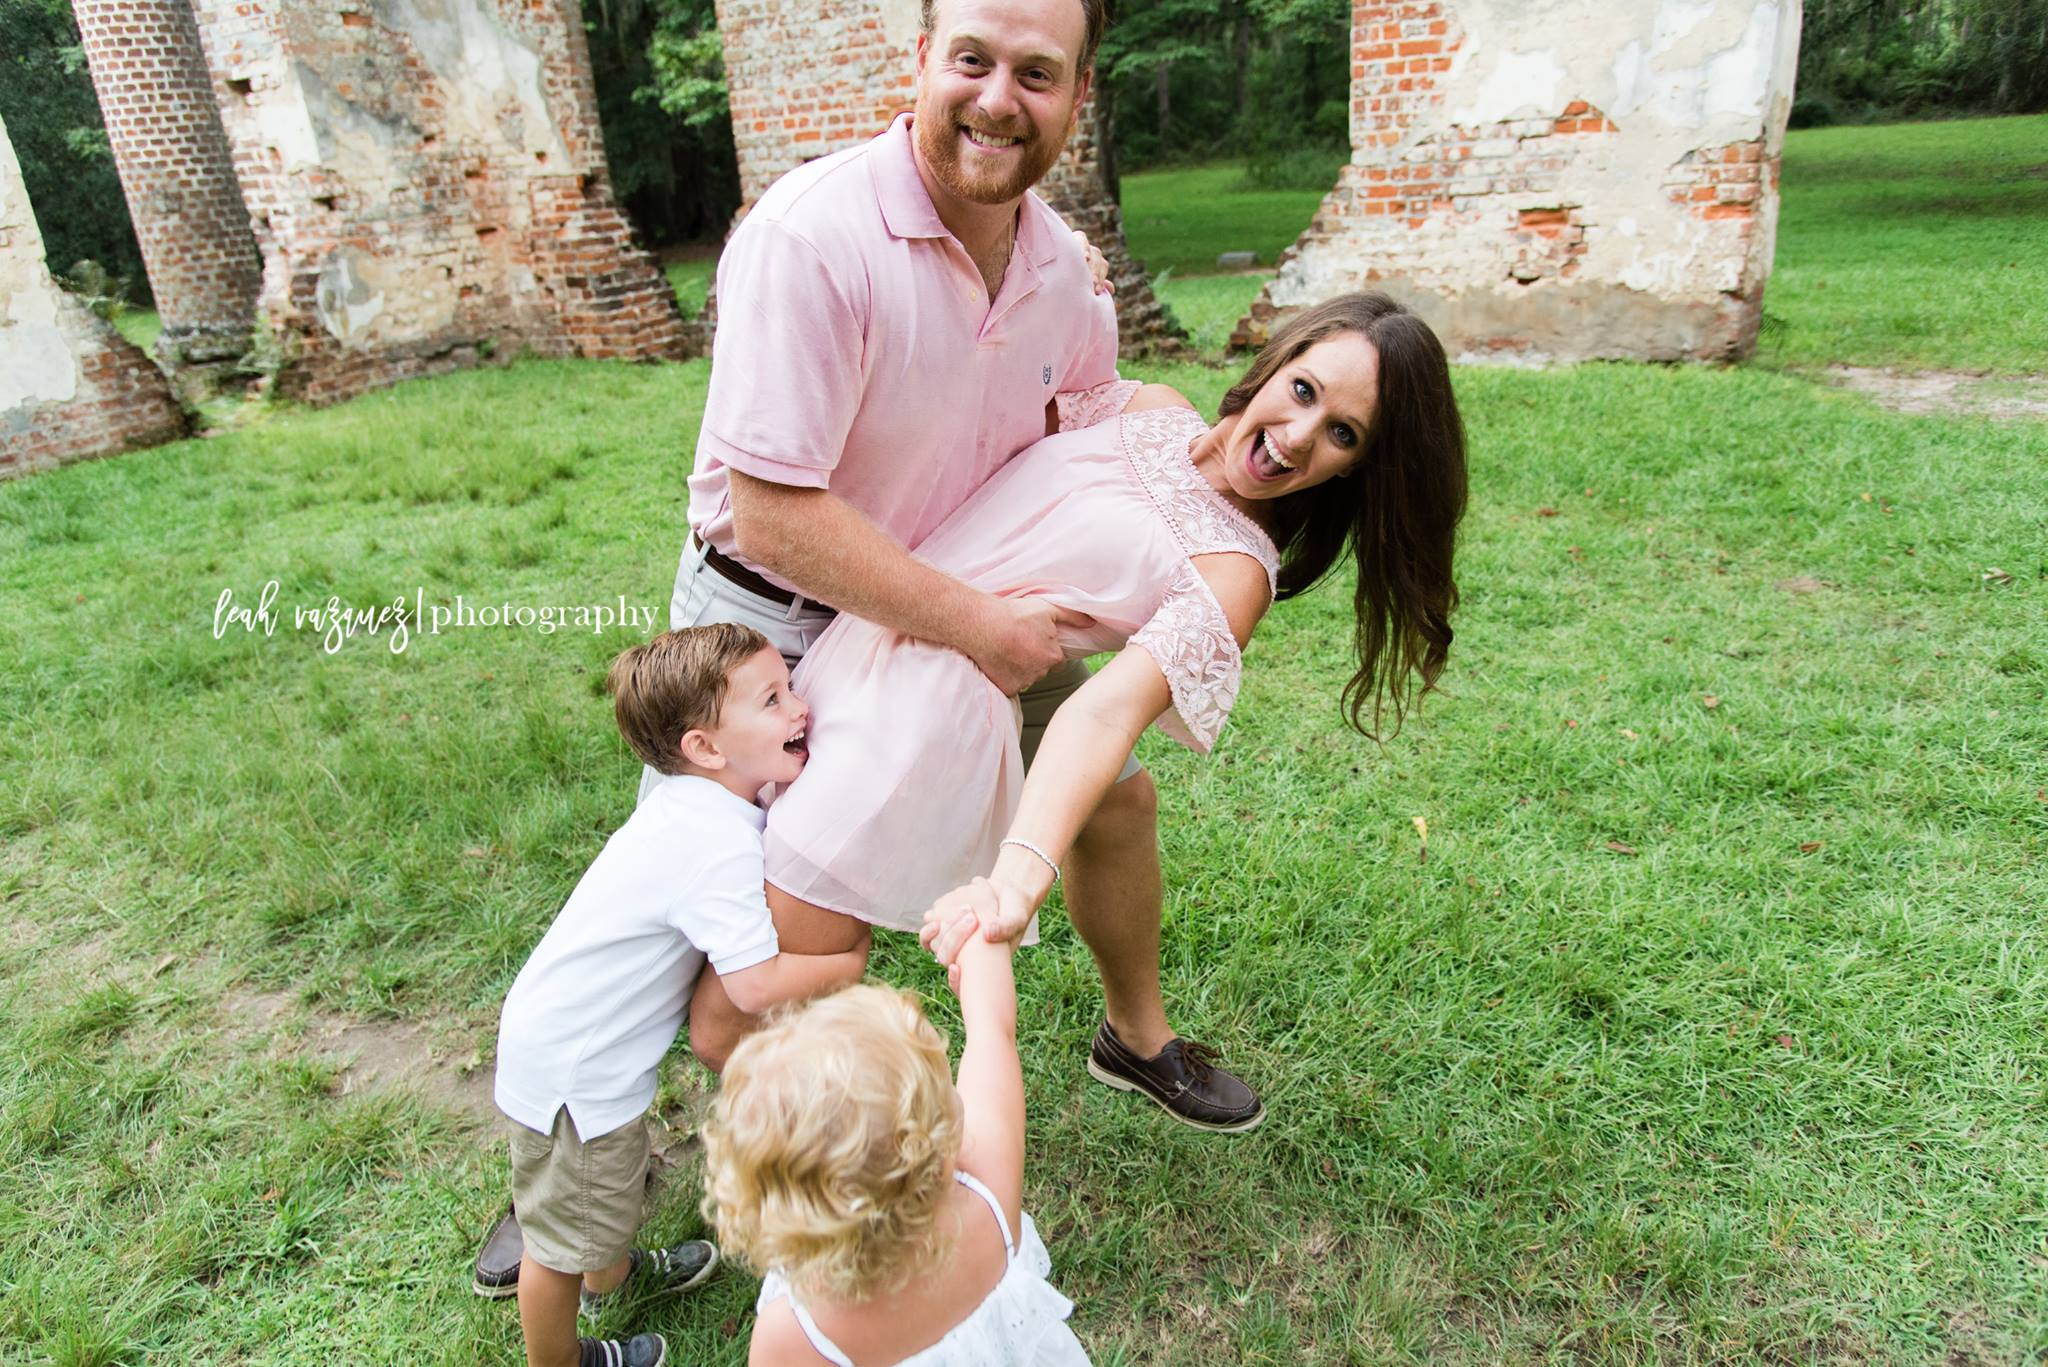 fun emotive connected family photography outdoors leah vazquez